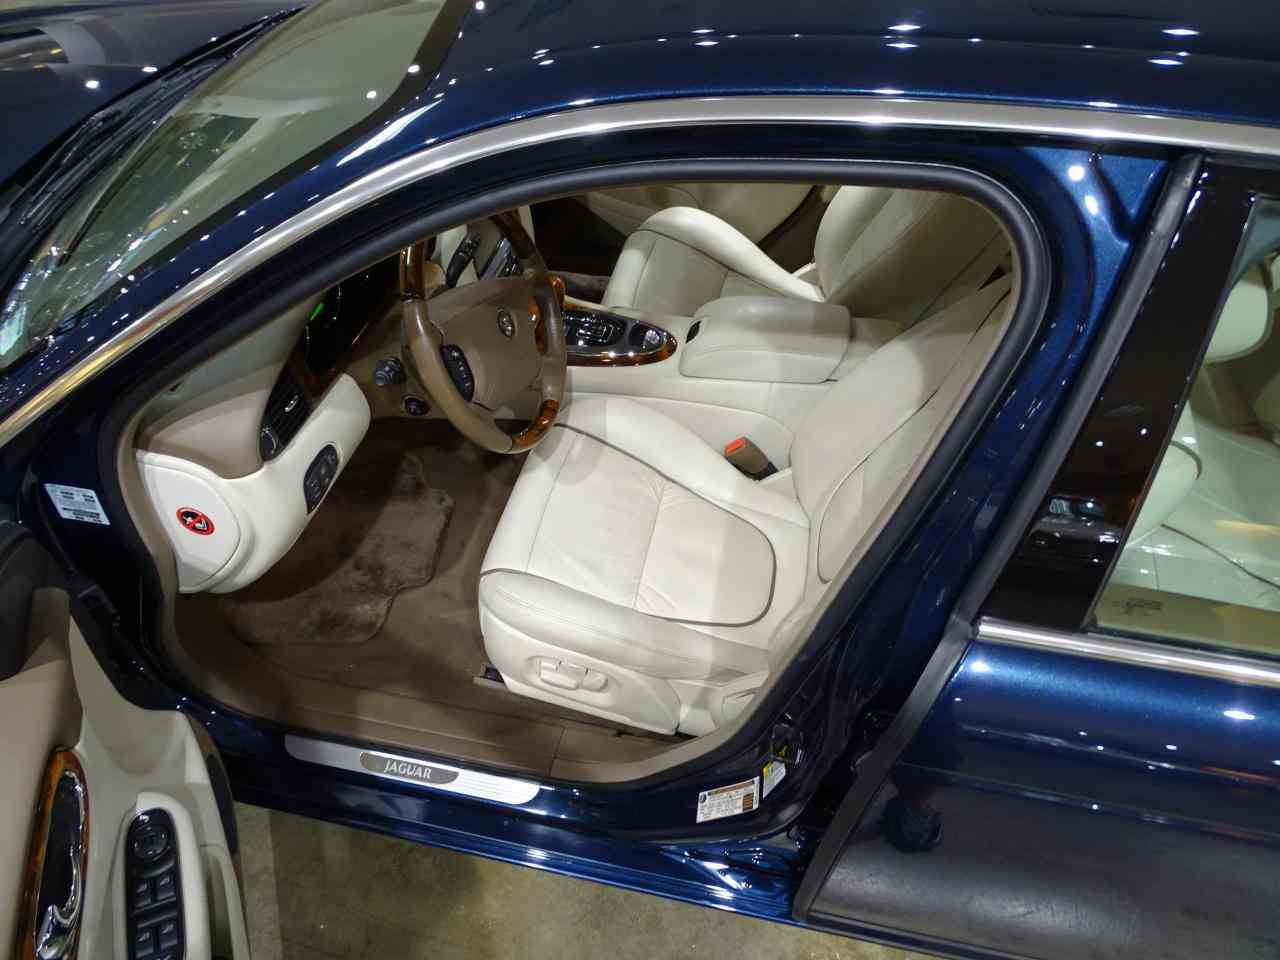 Large Picture of 2006 Jaguar XJ8 located in Illinois - $14,995.00 Offered by Gateway Classic Cars - St. Louis - MFNT